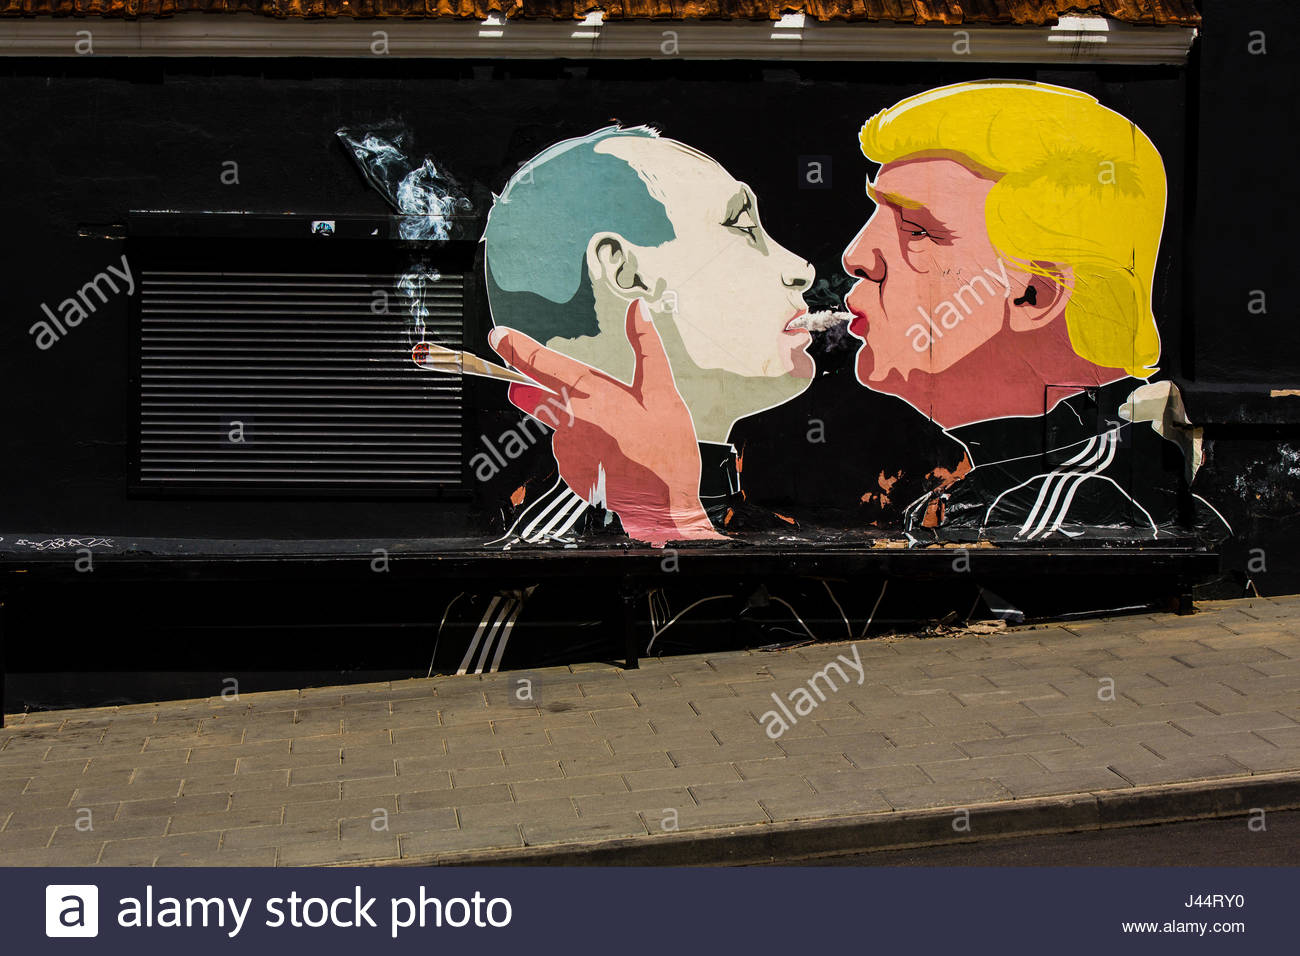 Graffiti 'Trump and Putin sharing a joint', Vilnius, Lithuania, 24 april 2017 with property release - Stock Image